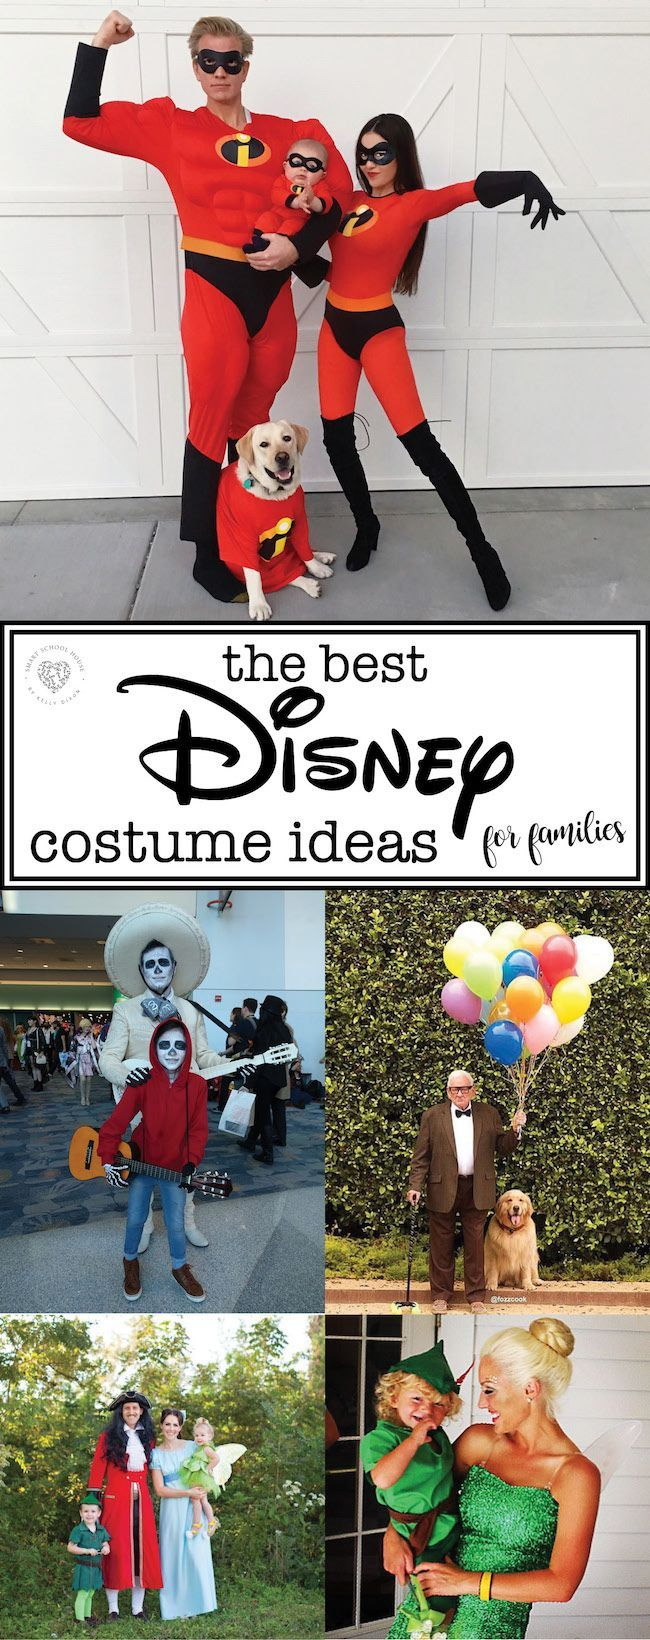 Disney Halloween Costume Ideas for Families